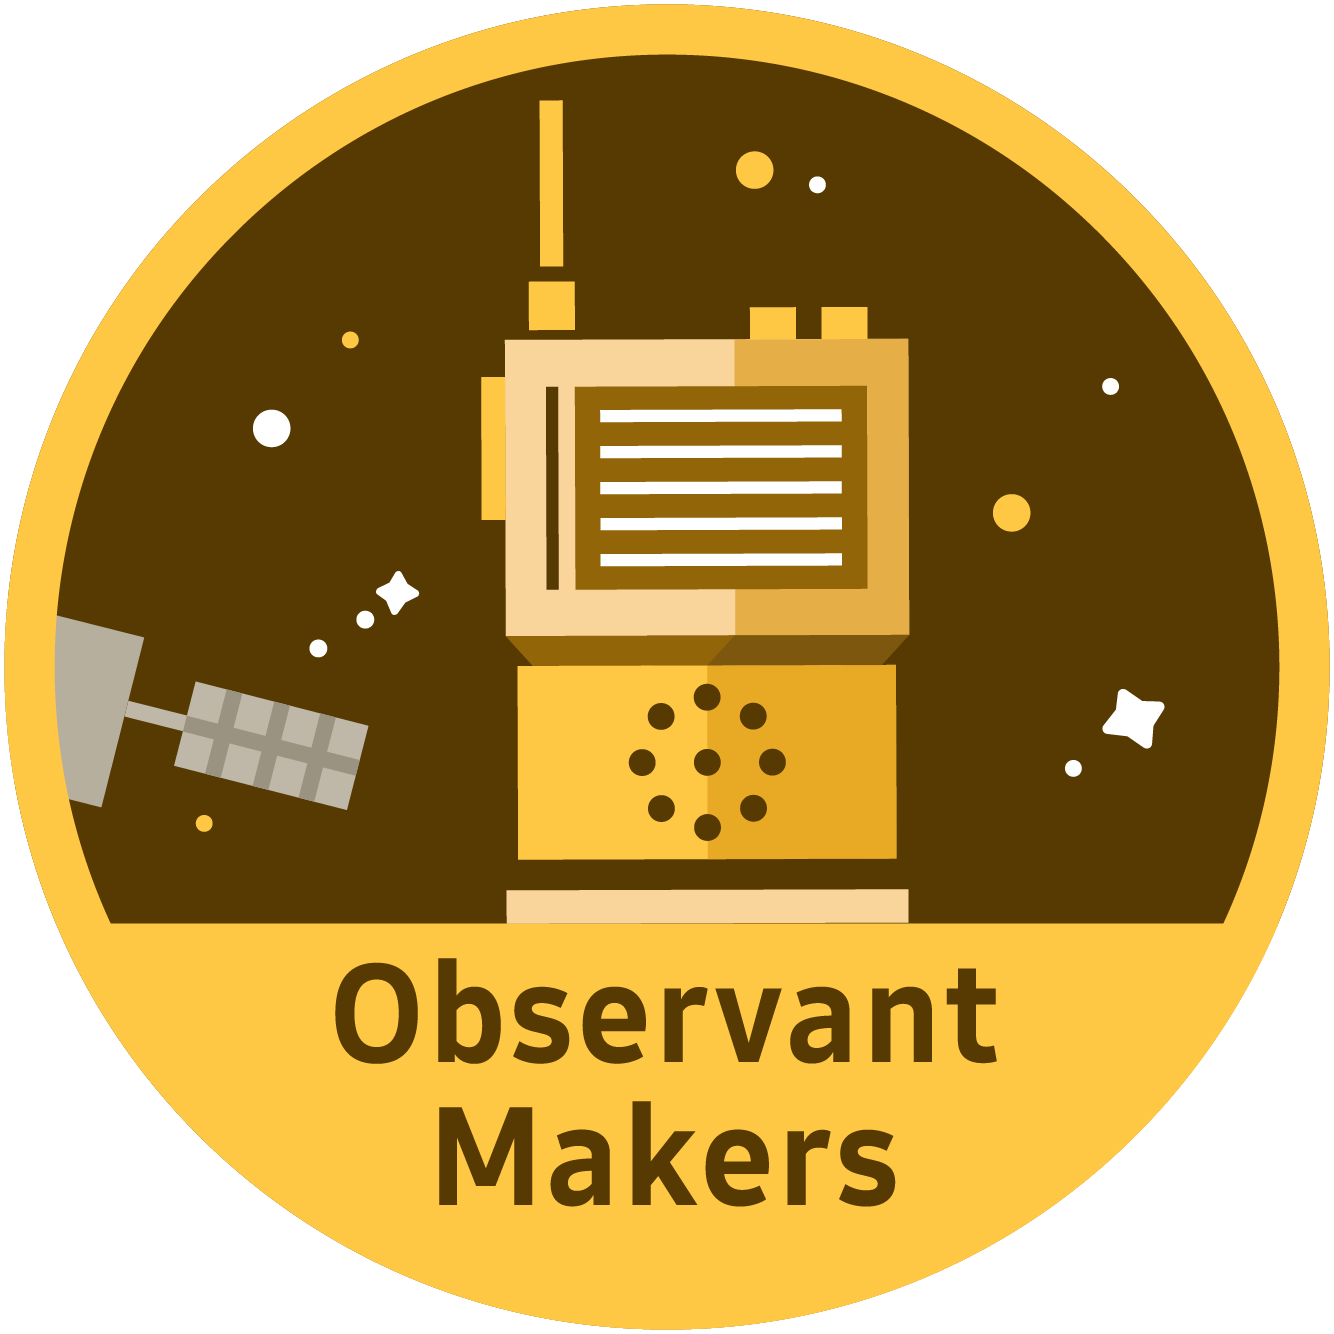 Observant Makers